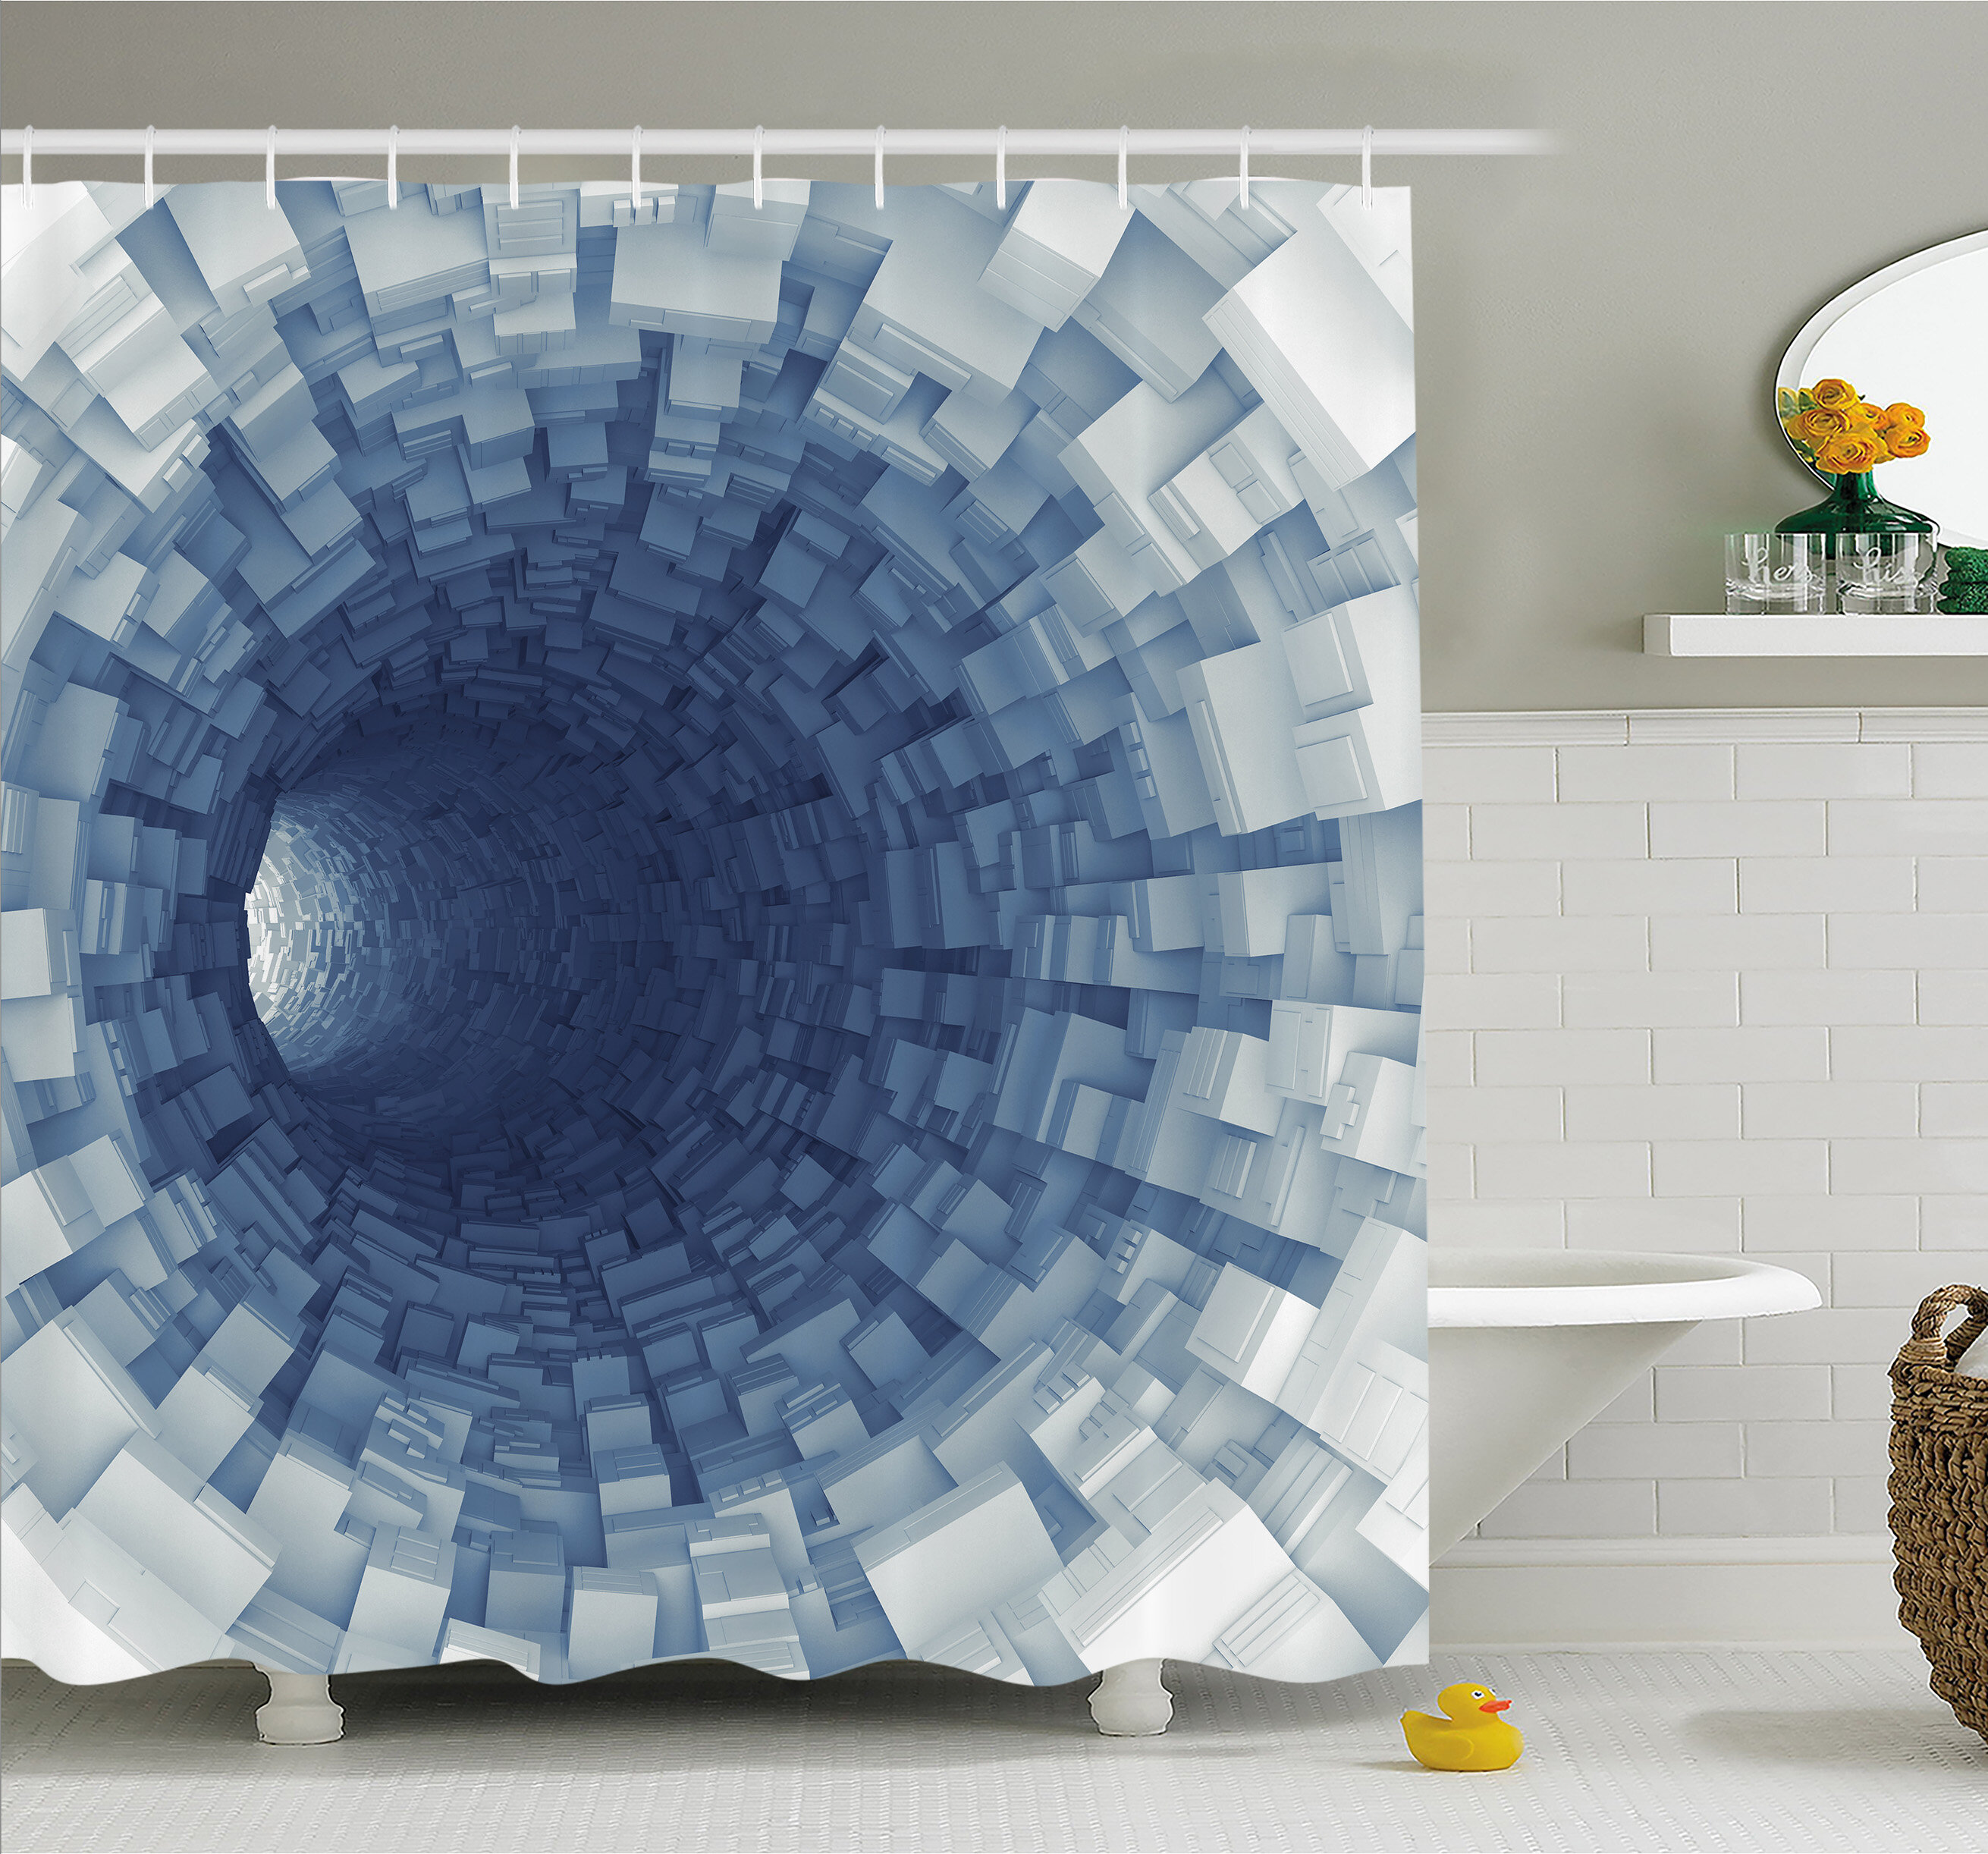 Ambesonne Outer Space Endless Tunnel With Fractal Square Shaped Segment Digital Dimension Artwork Shower Curtain Set